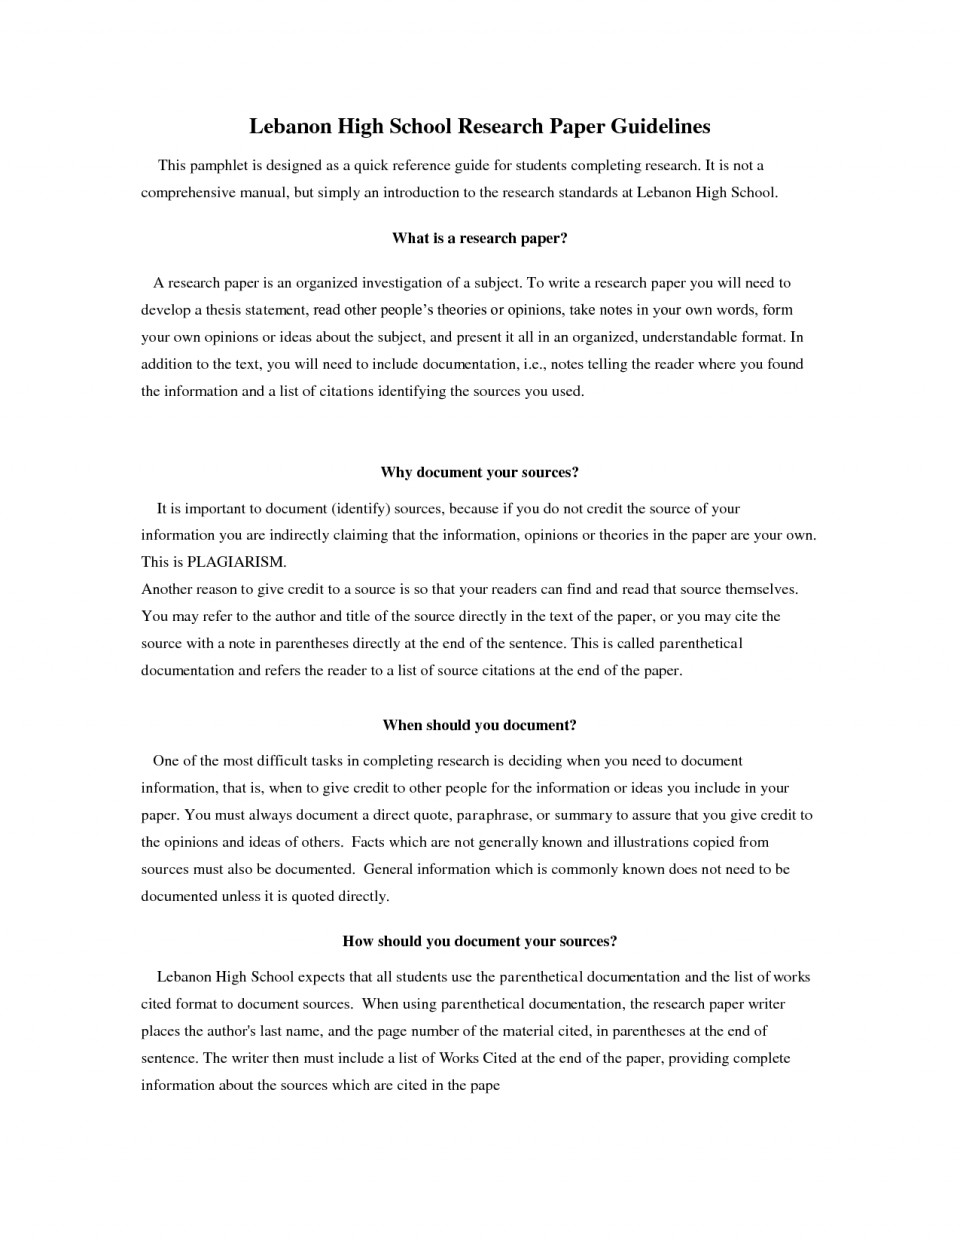 024 Research Paper Good Singular Topic Topics For High School 2019 Easy Reddit 960